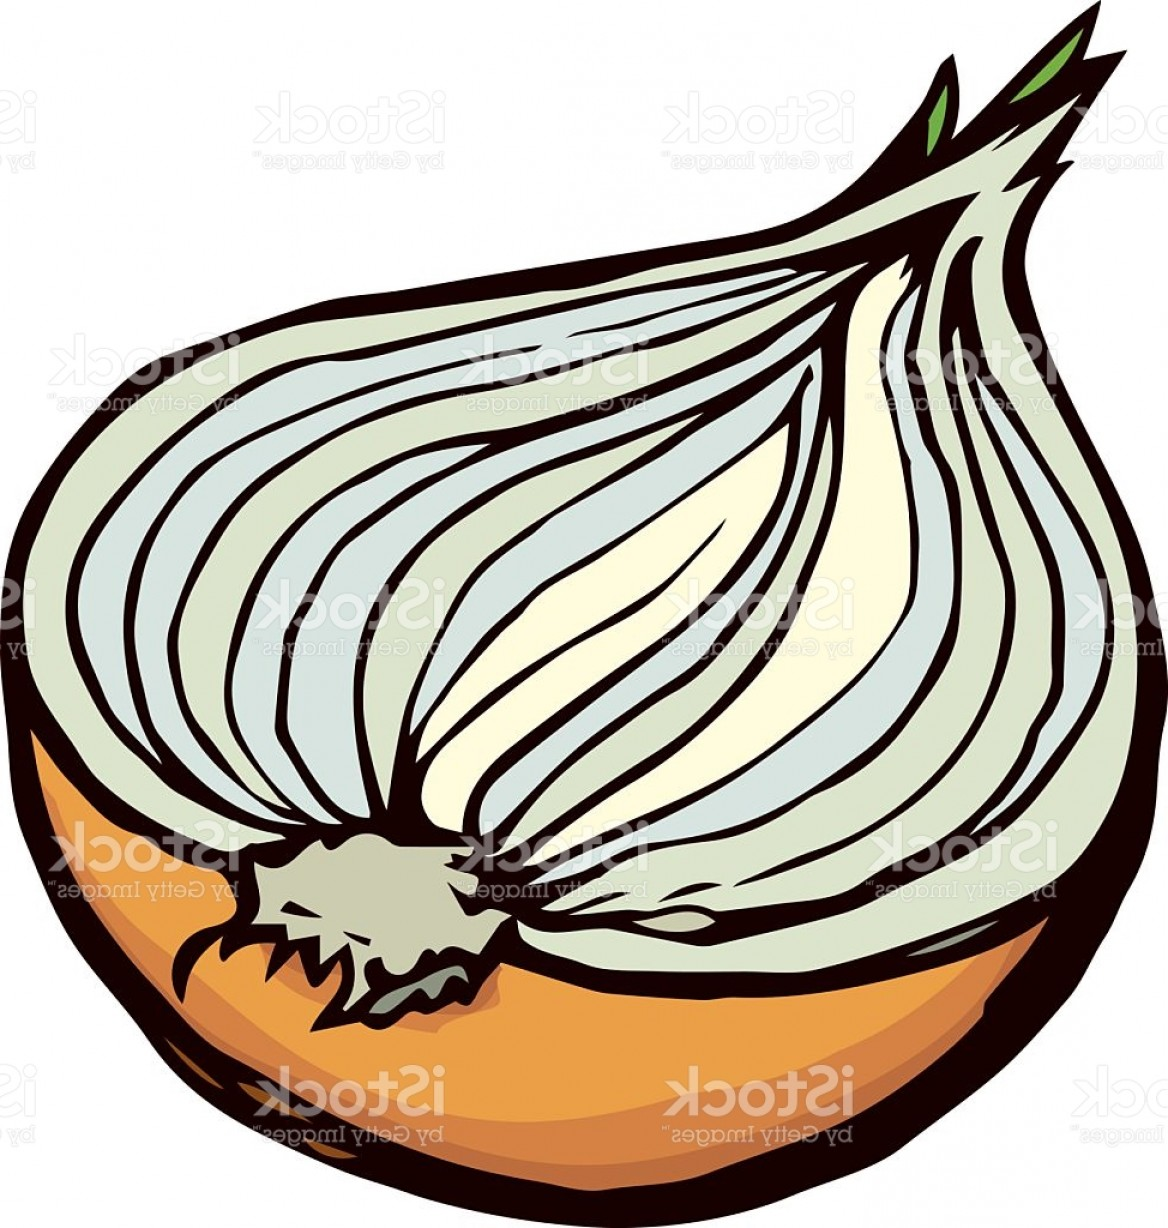 Onion Vector: Half Of Onions Vector Drawing Gm